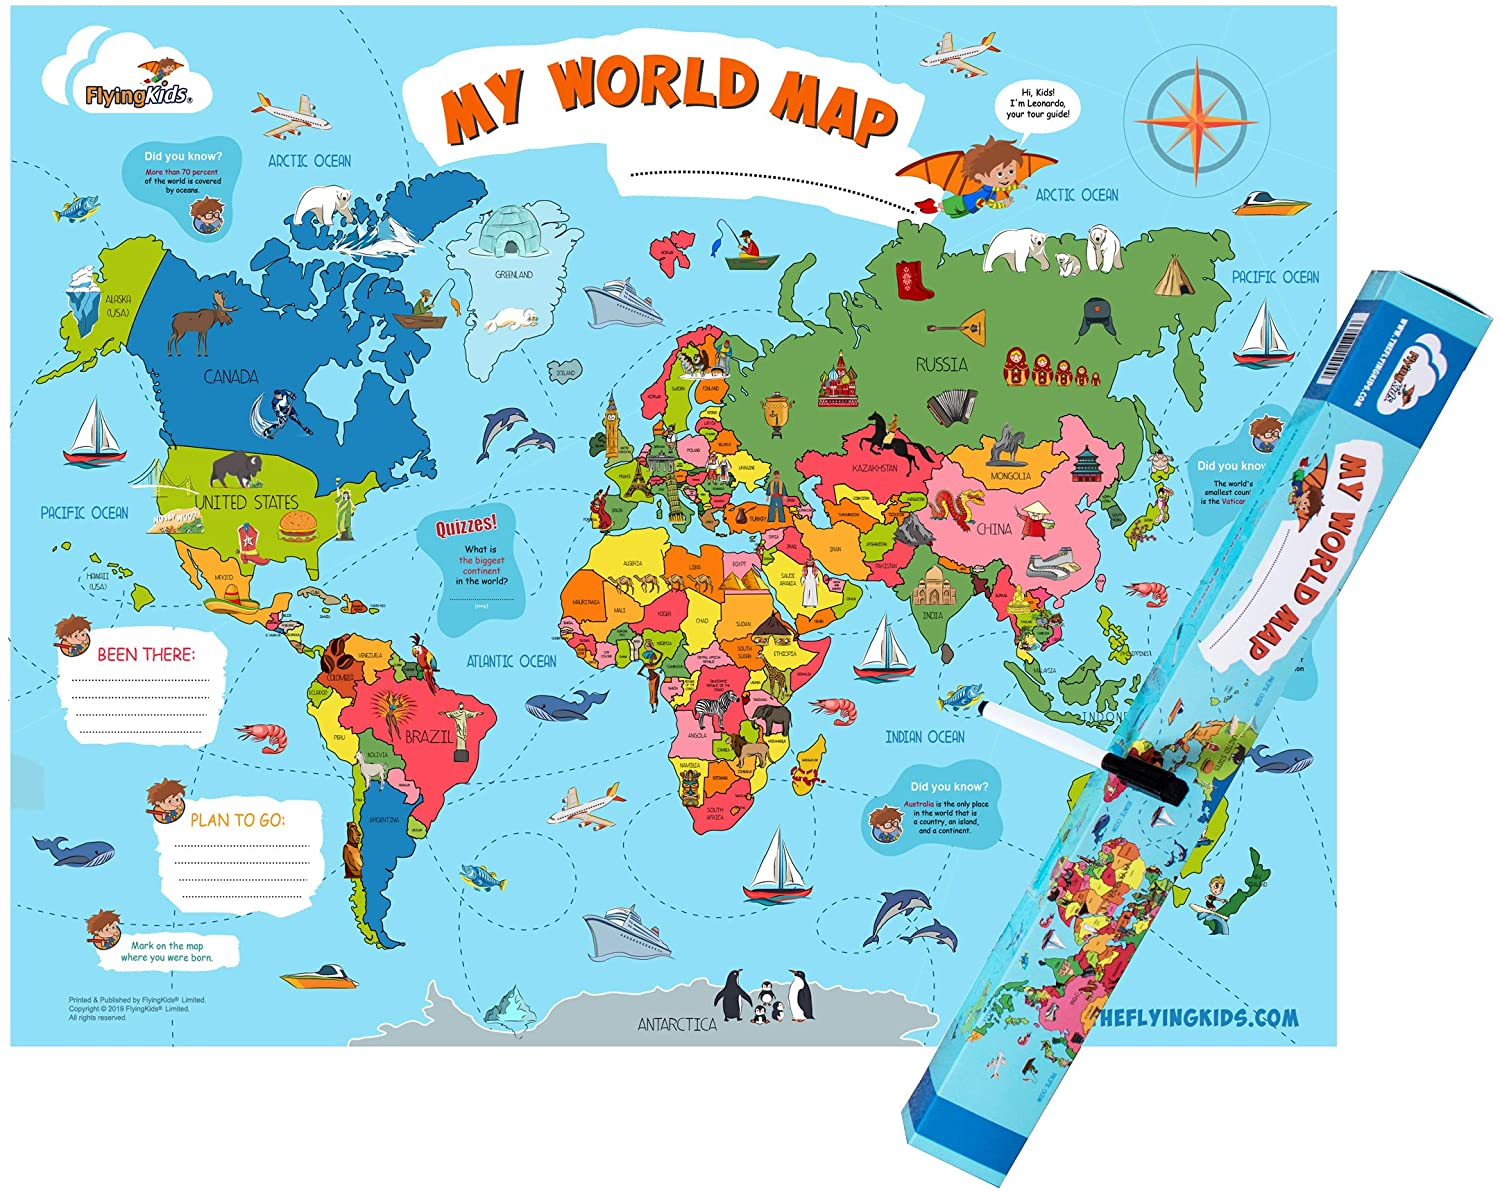 Map Of The World For Kids Amazon.com: FlyingKids World Map Poster for Kids. Educational